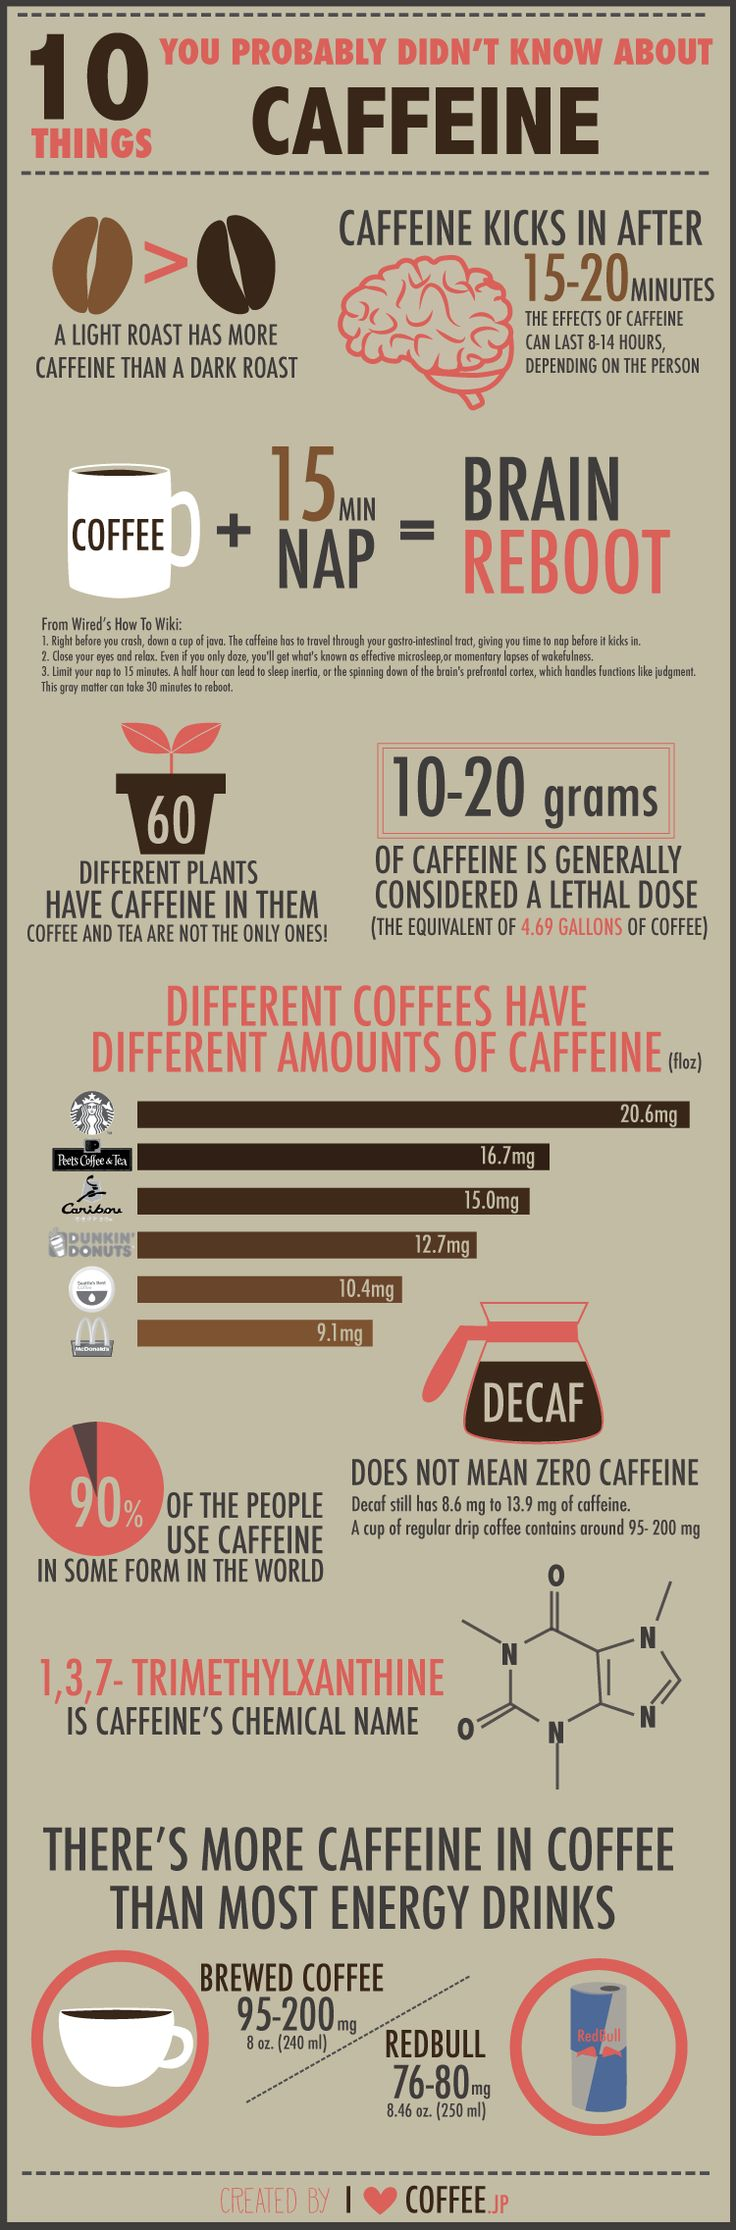 10 things probably you didn't know about #caffeine. #coffee #health #brain #nap #trimethylxanthine #chemistry #energy #drink #energydrink #redbull #infographic